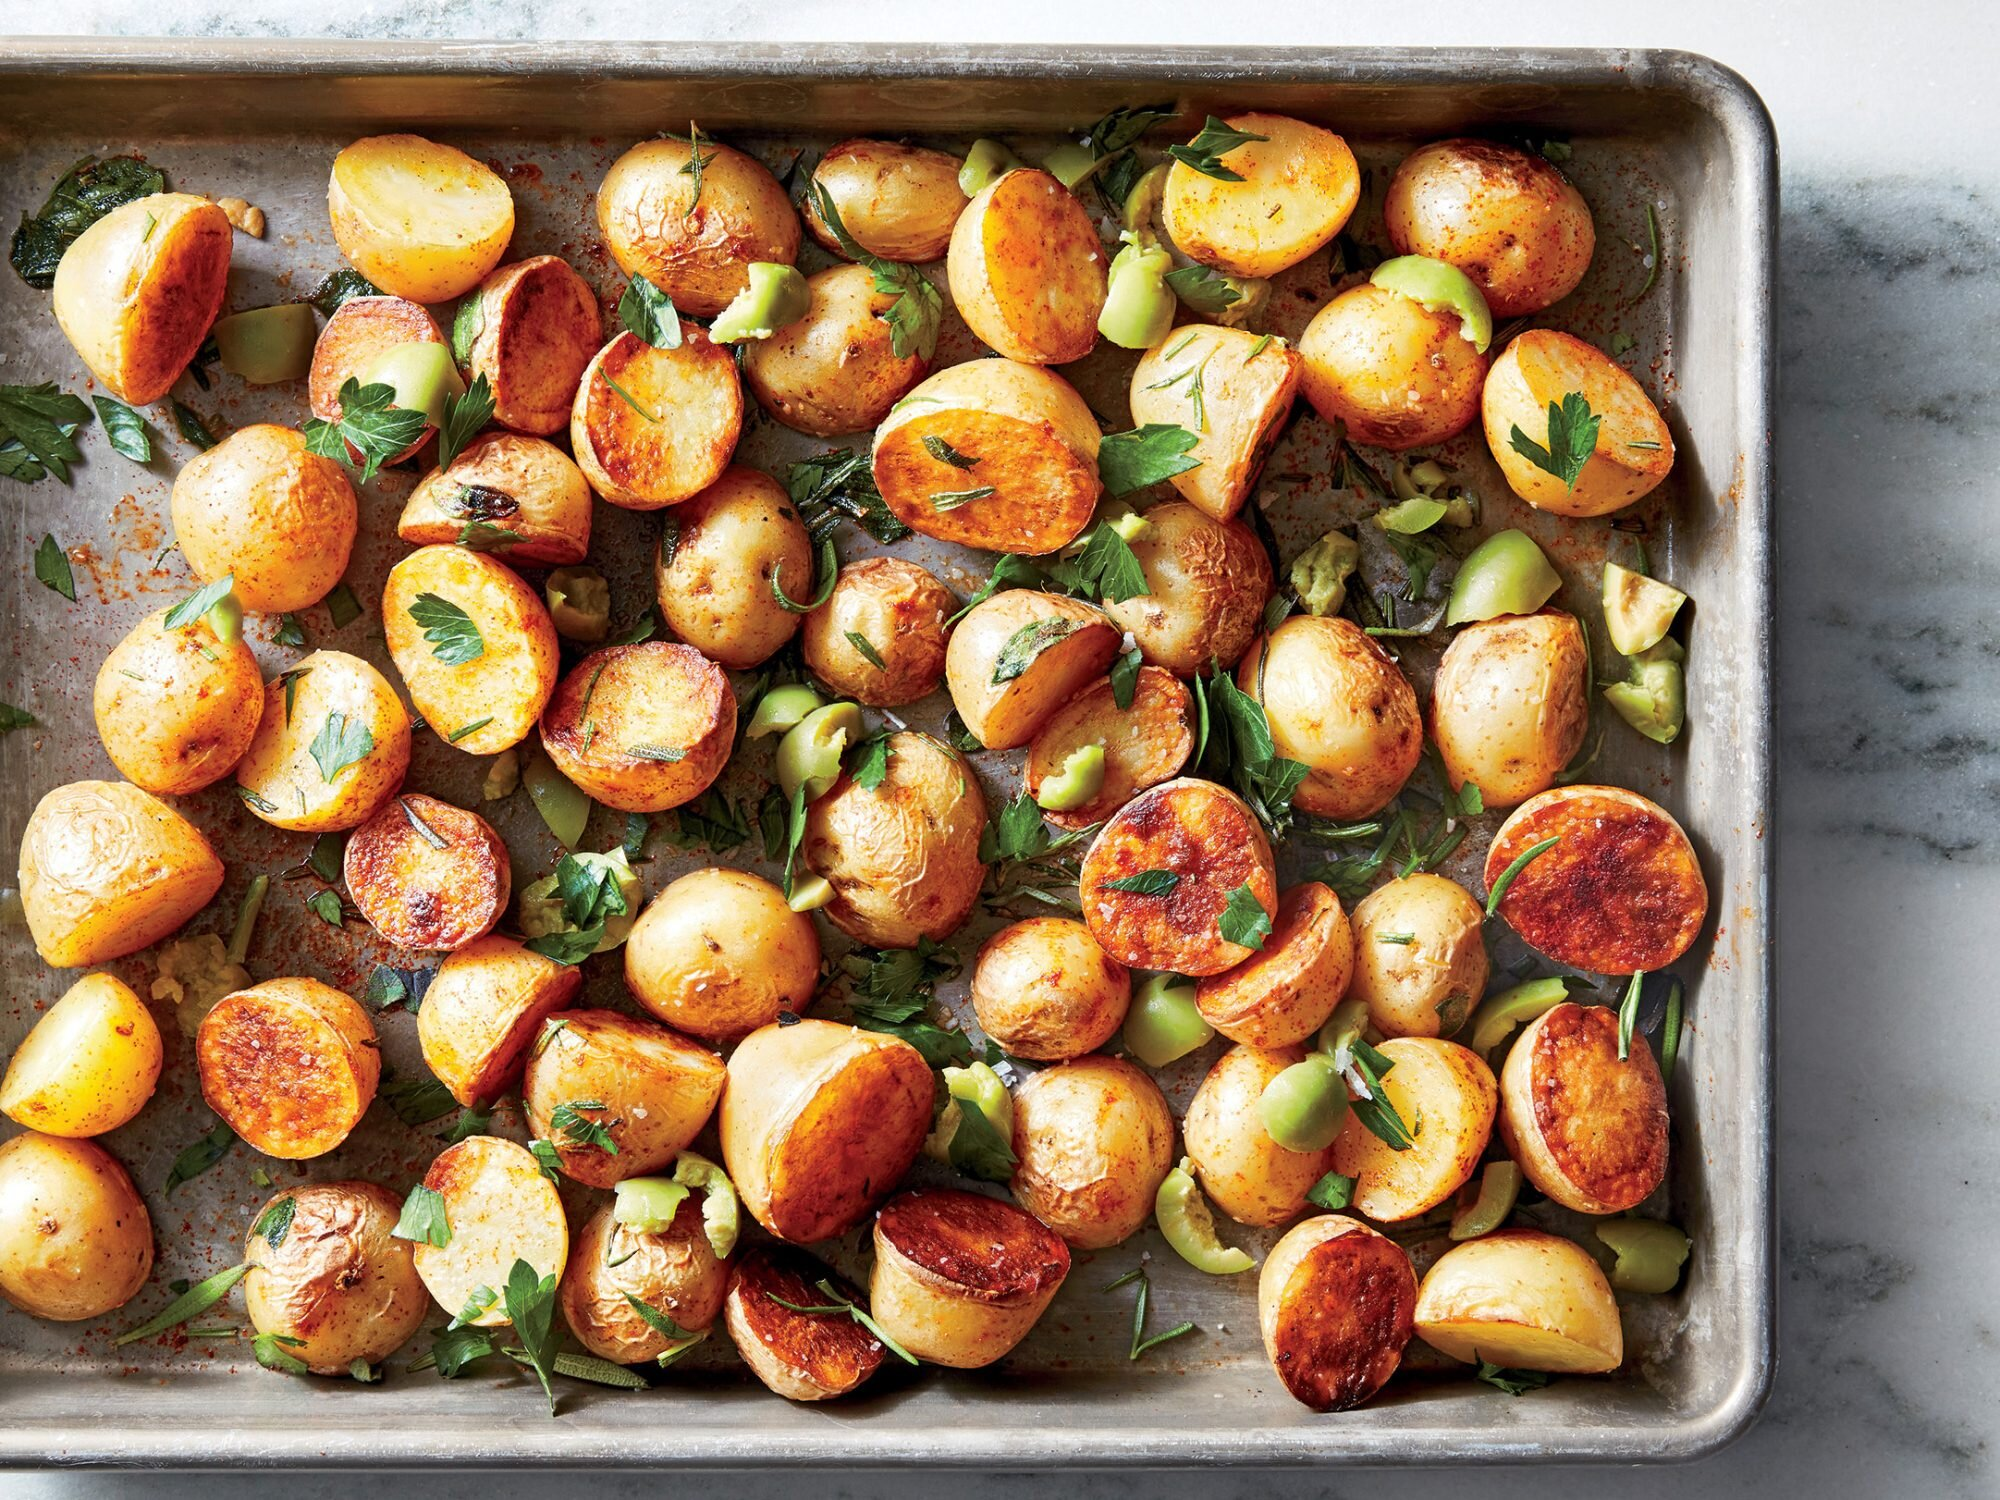 How to Make Oven Roasted Potatoes So They're Actually Crispy